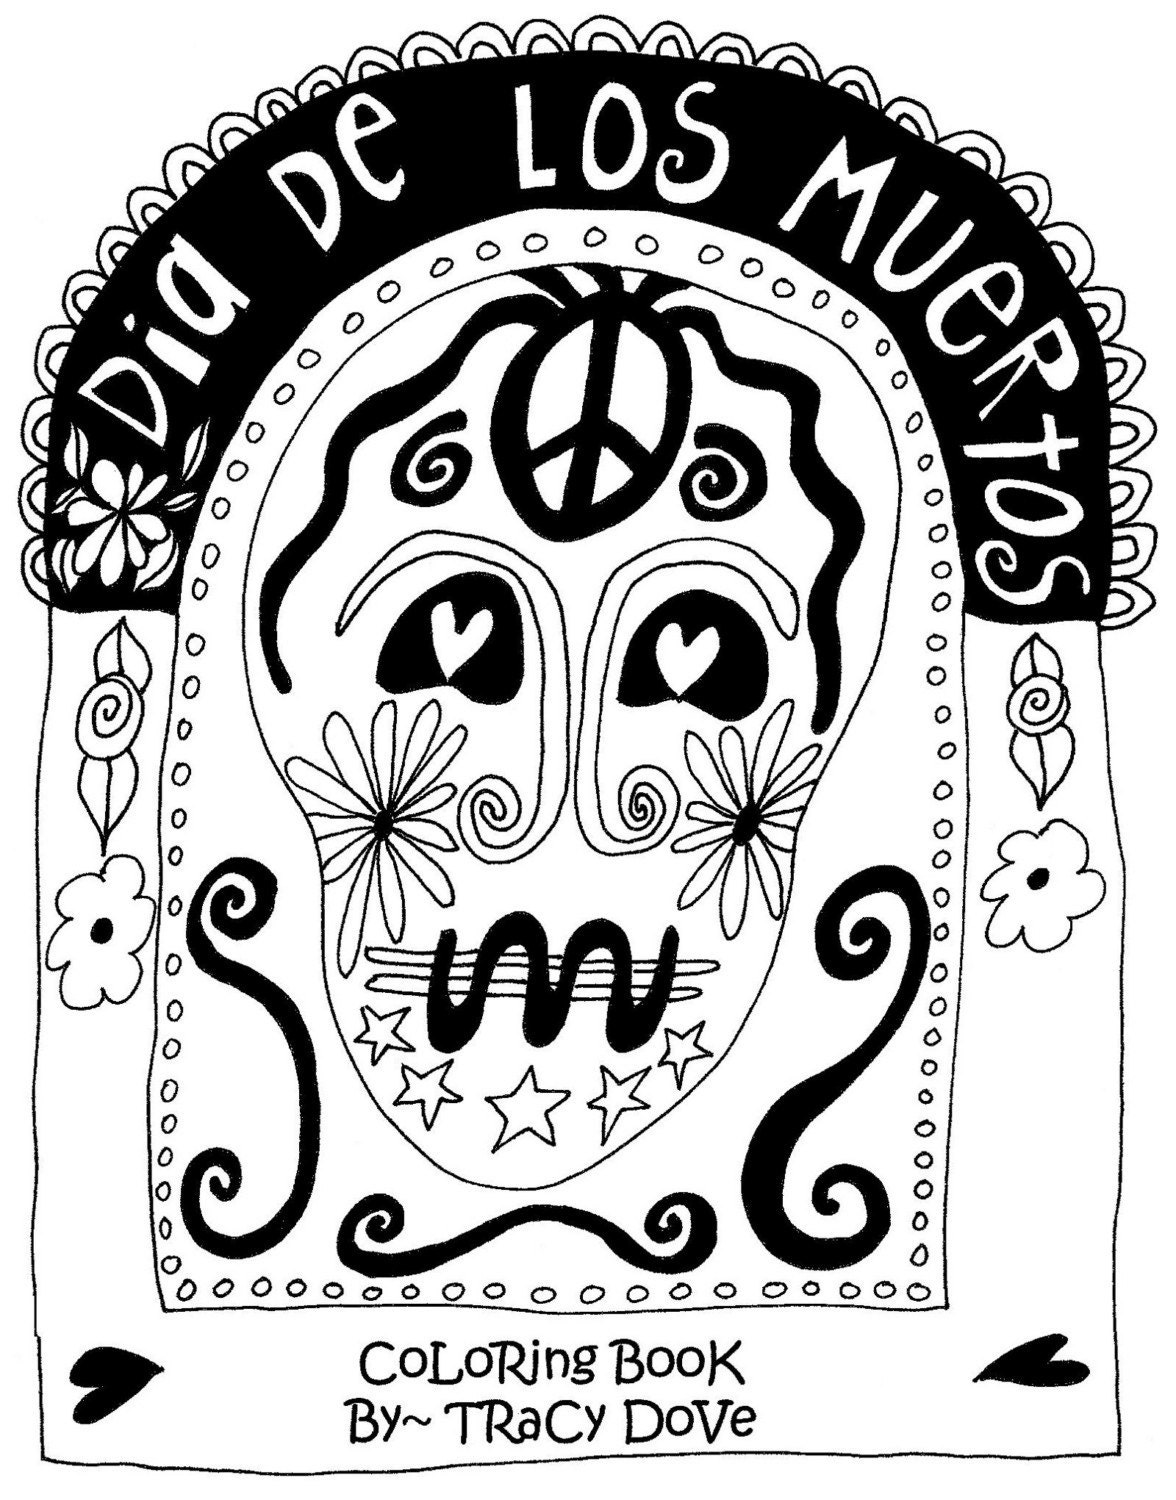 Coloring pages of printable for dia de los muertos la for Dia de los muertos coloring pages printable